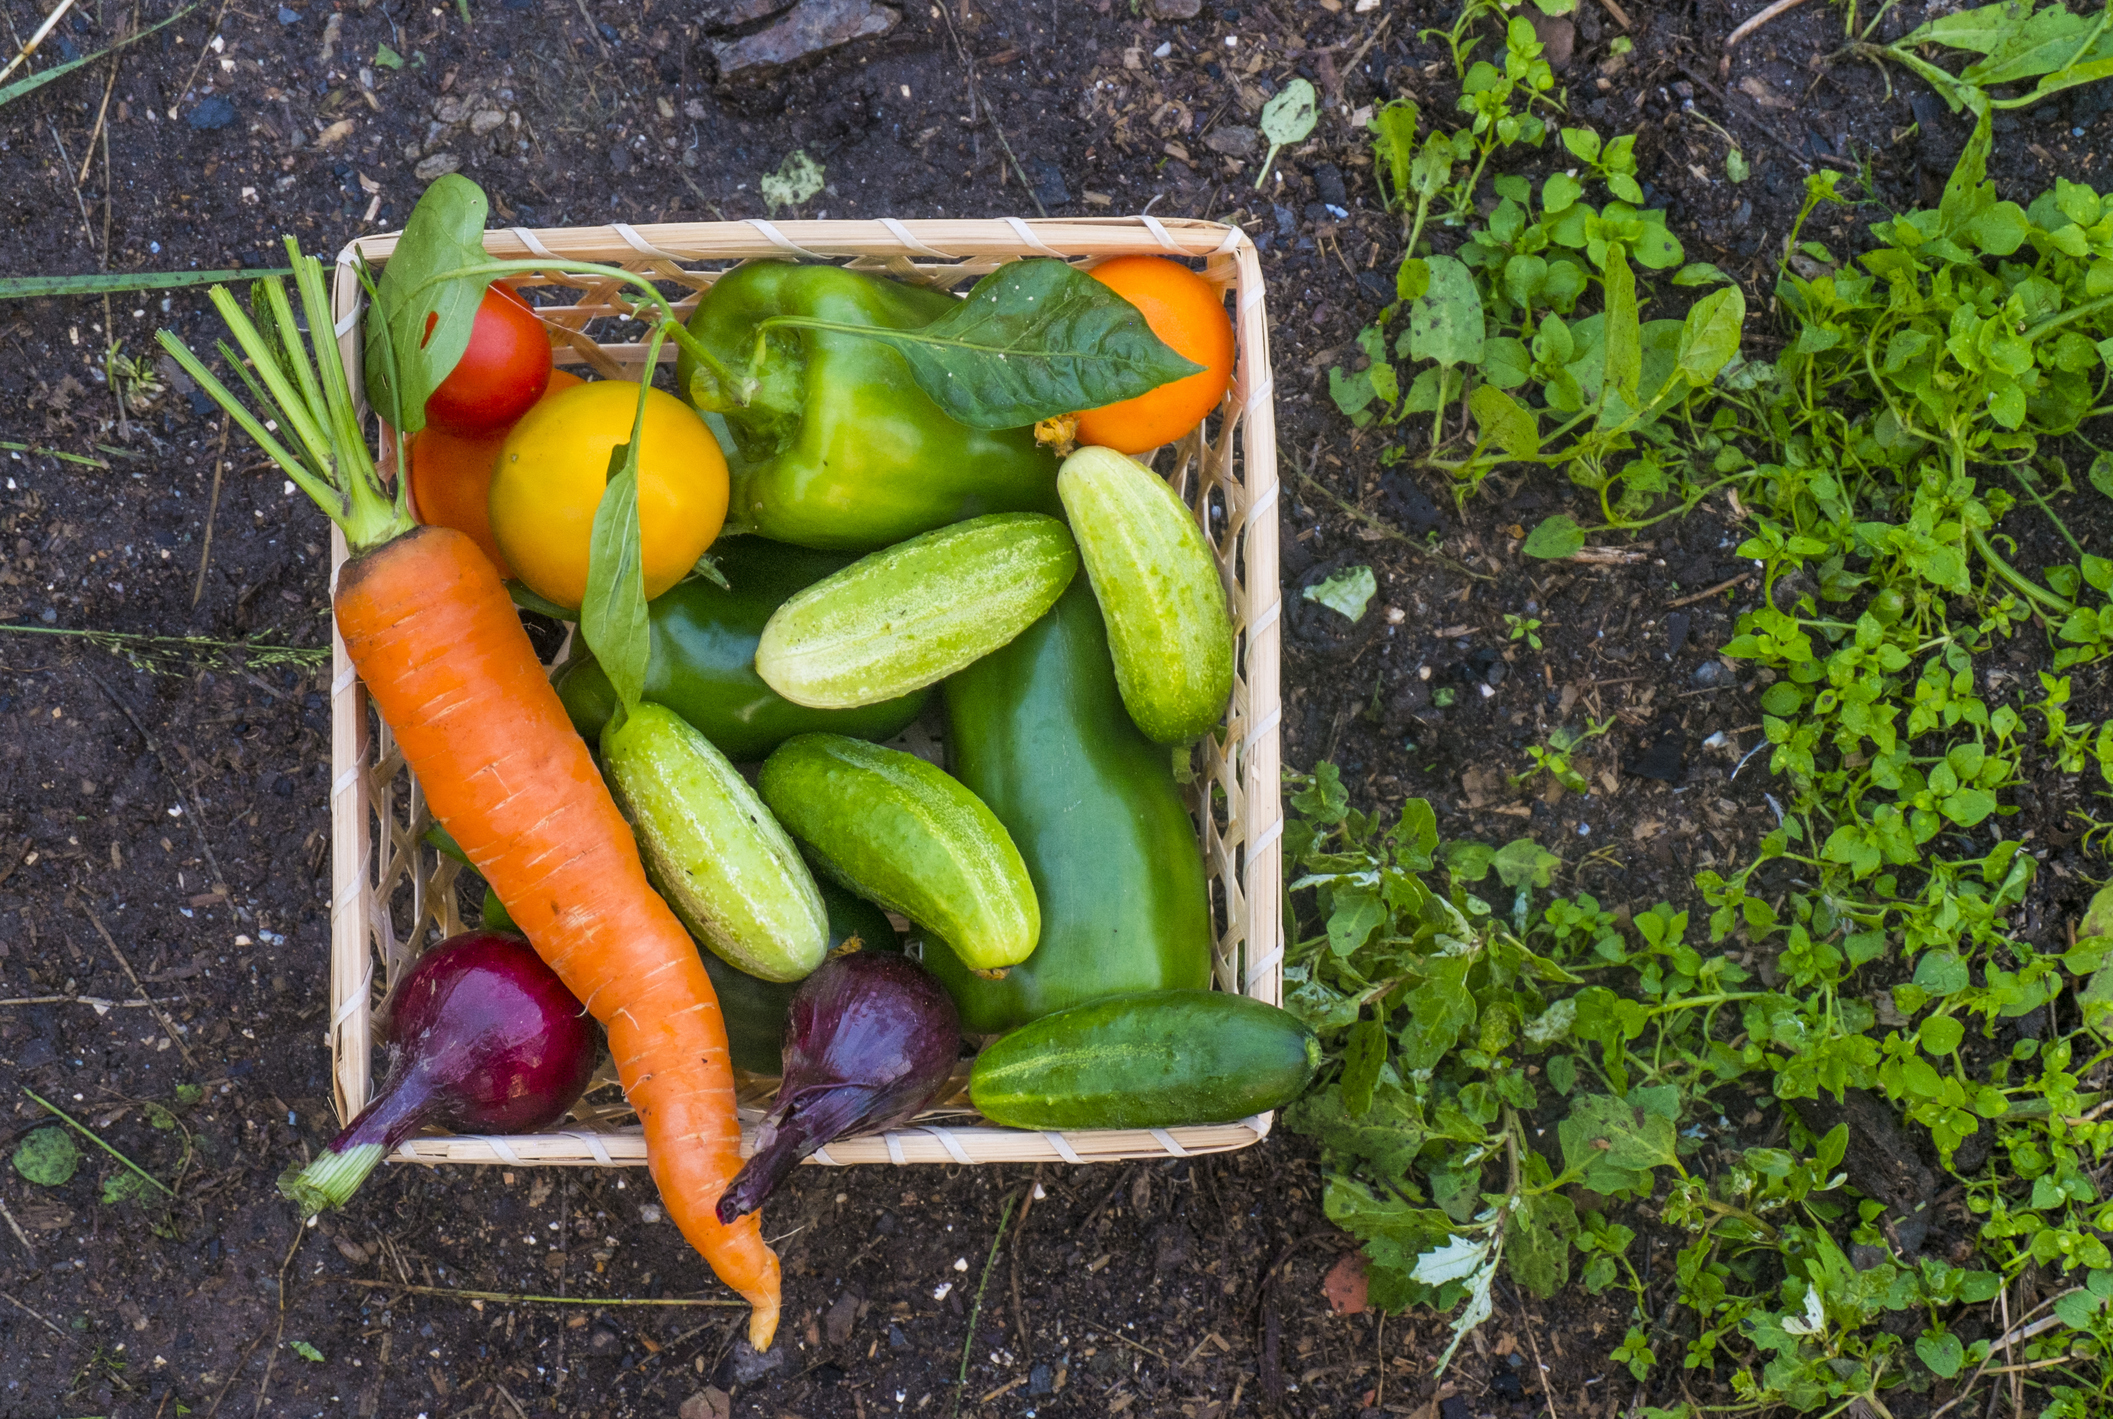 A colorful basket of vegetables sitting on the ground in a garden.